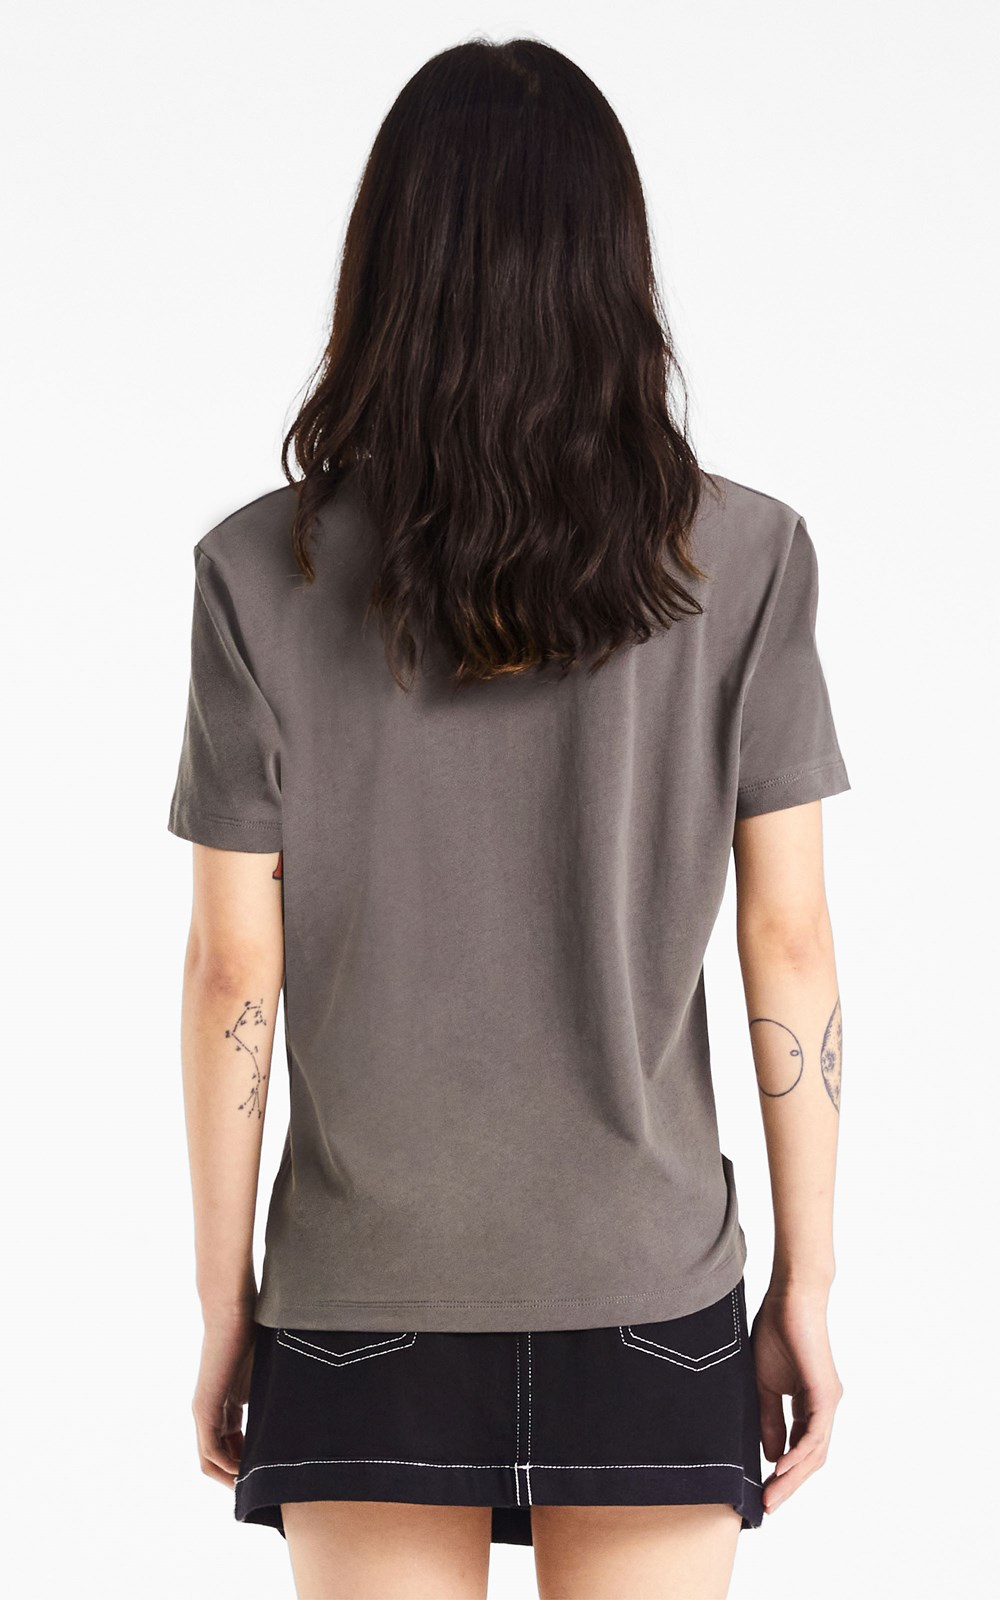 Tops | EMBROIDERED LOGO TEE